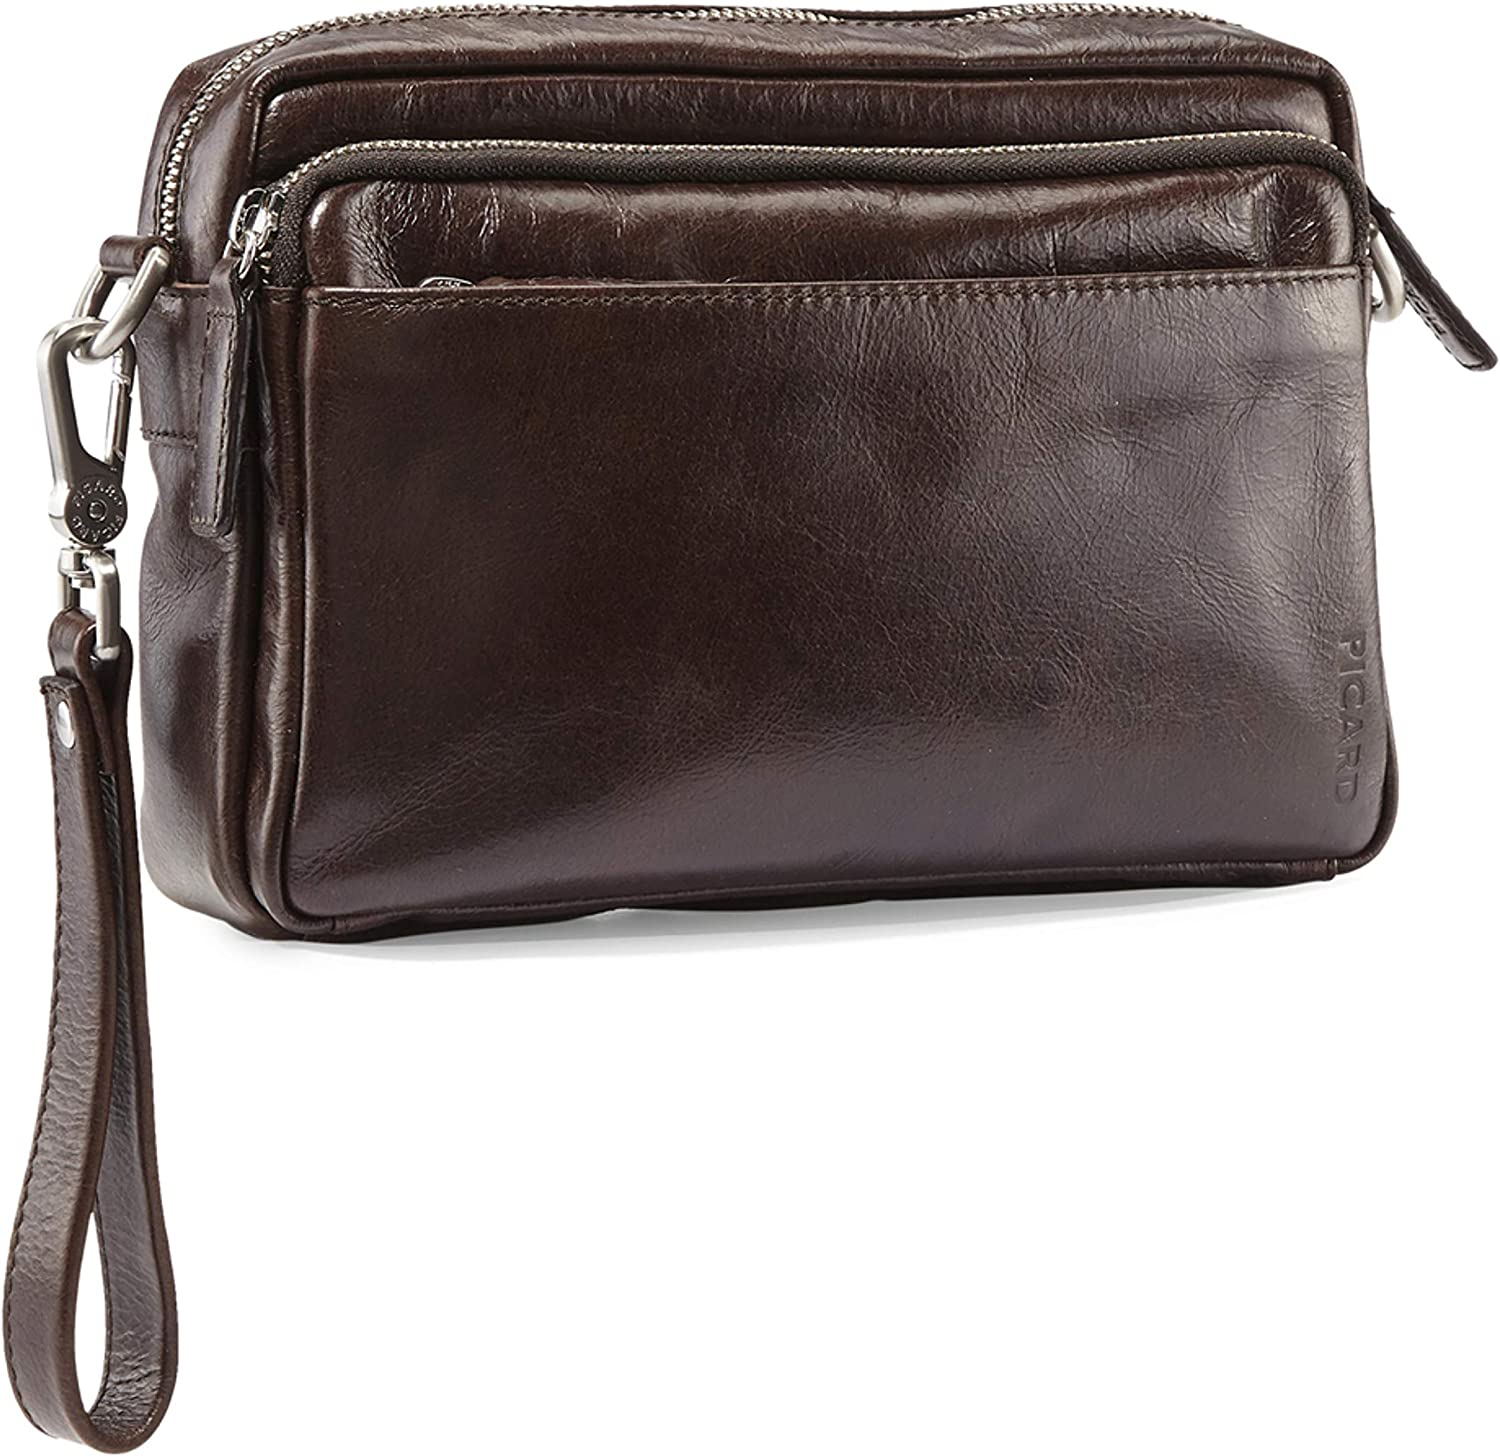 Picard Buddy Clutch and Crossbody Cognac Café